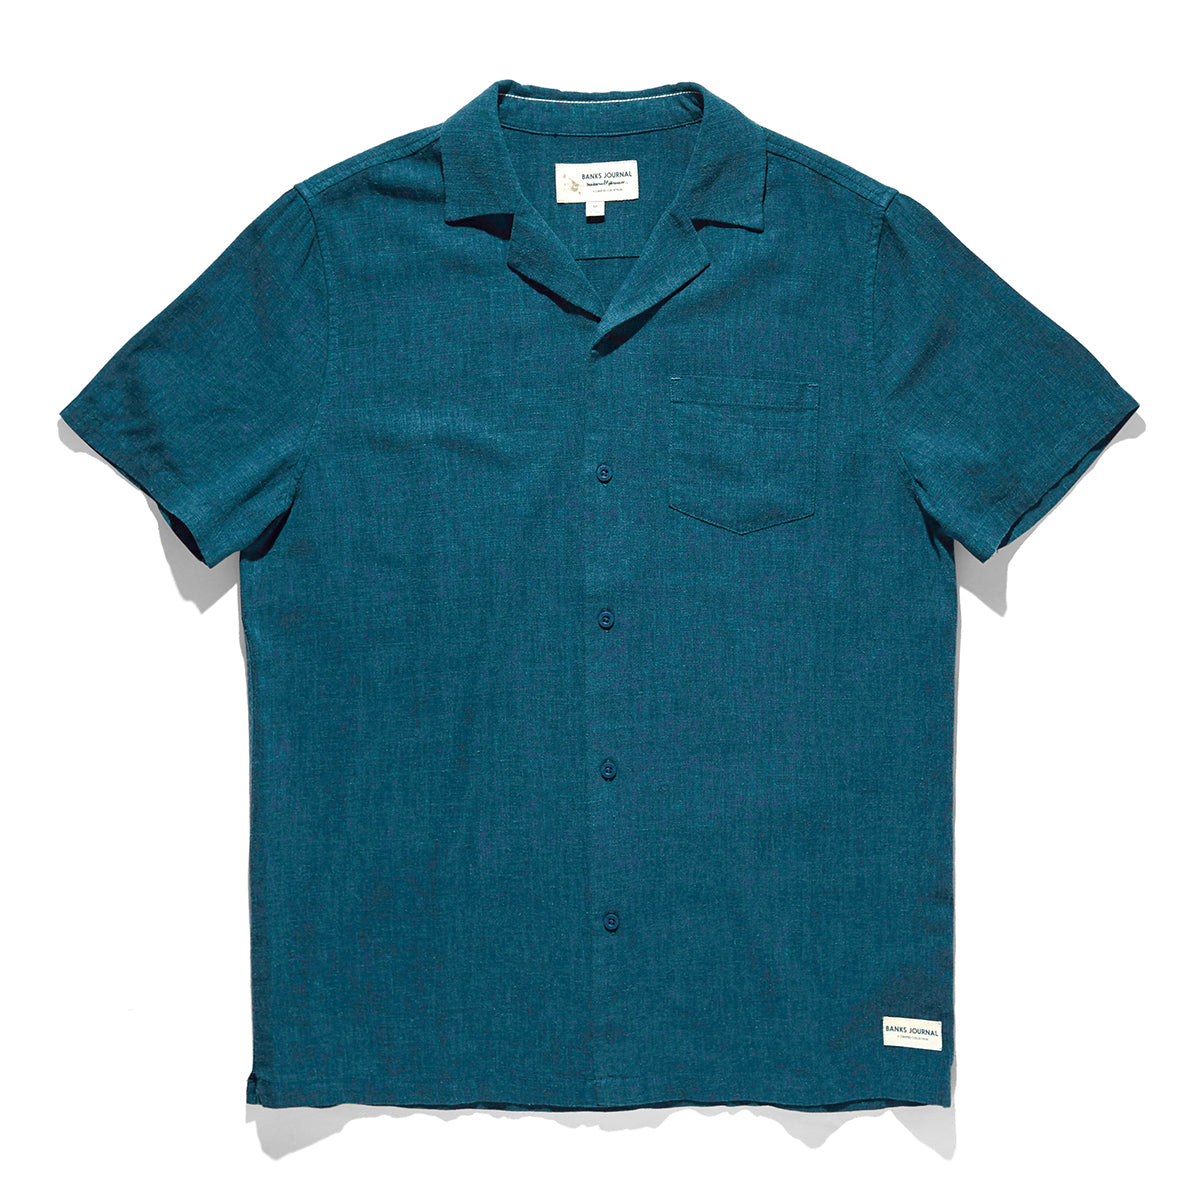 Business & Pleasure Co. Short Sleeve Linen Shirt - Slate